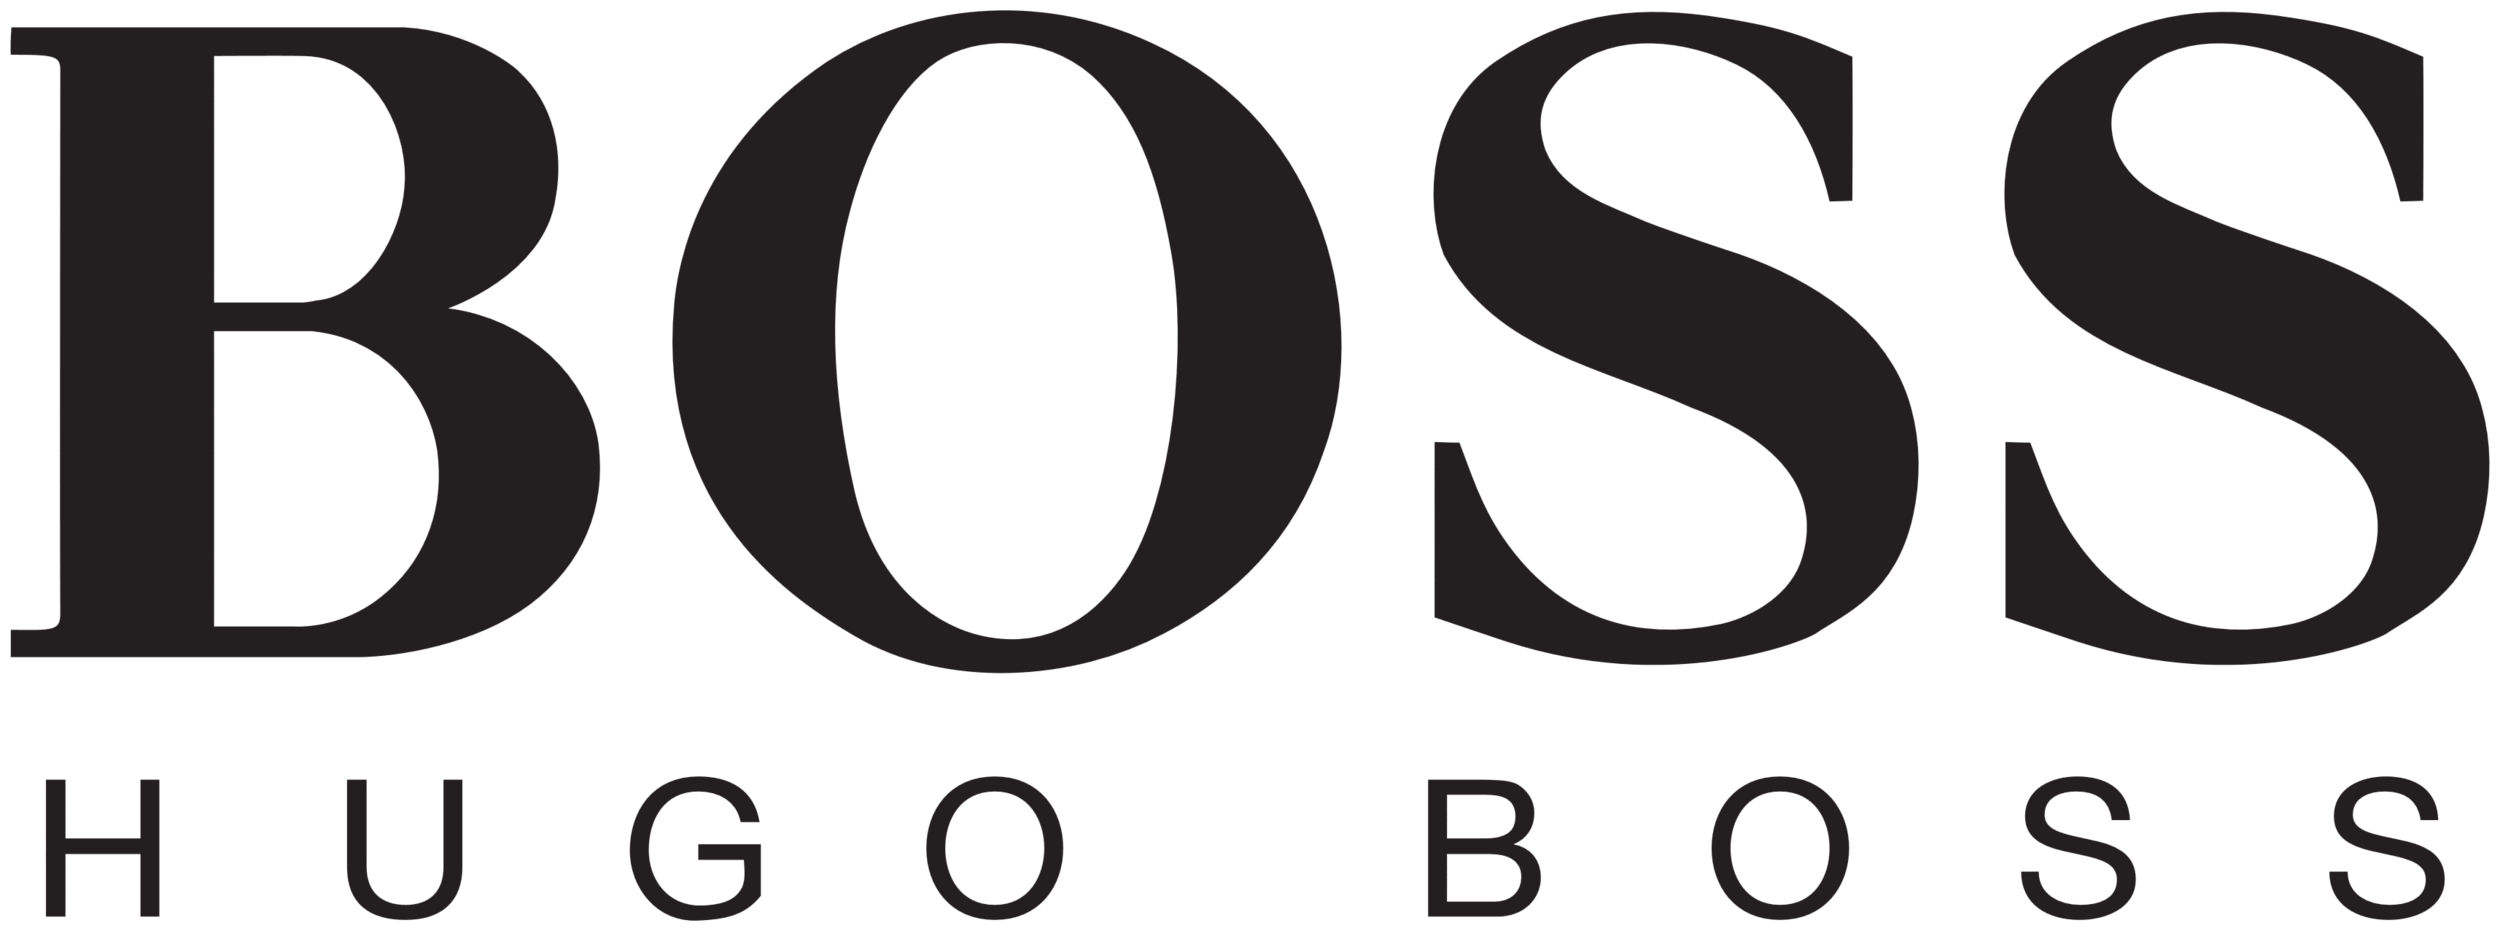 Hugo_Boss_logo.png